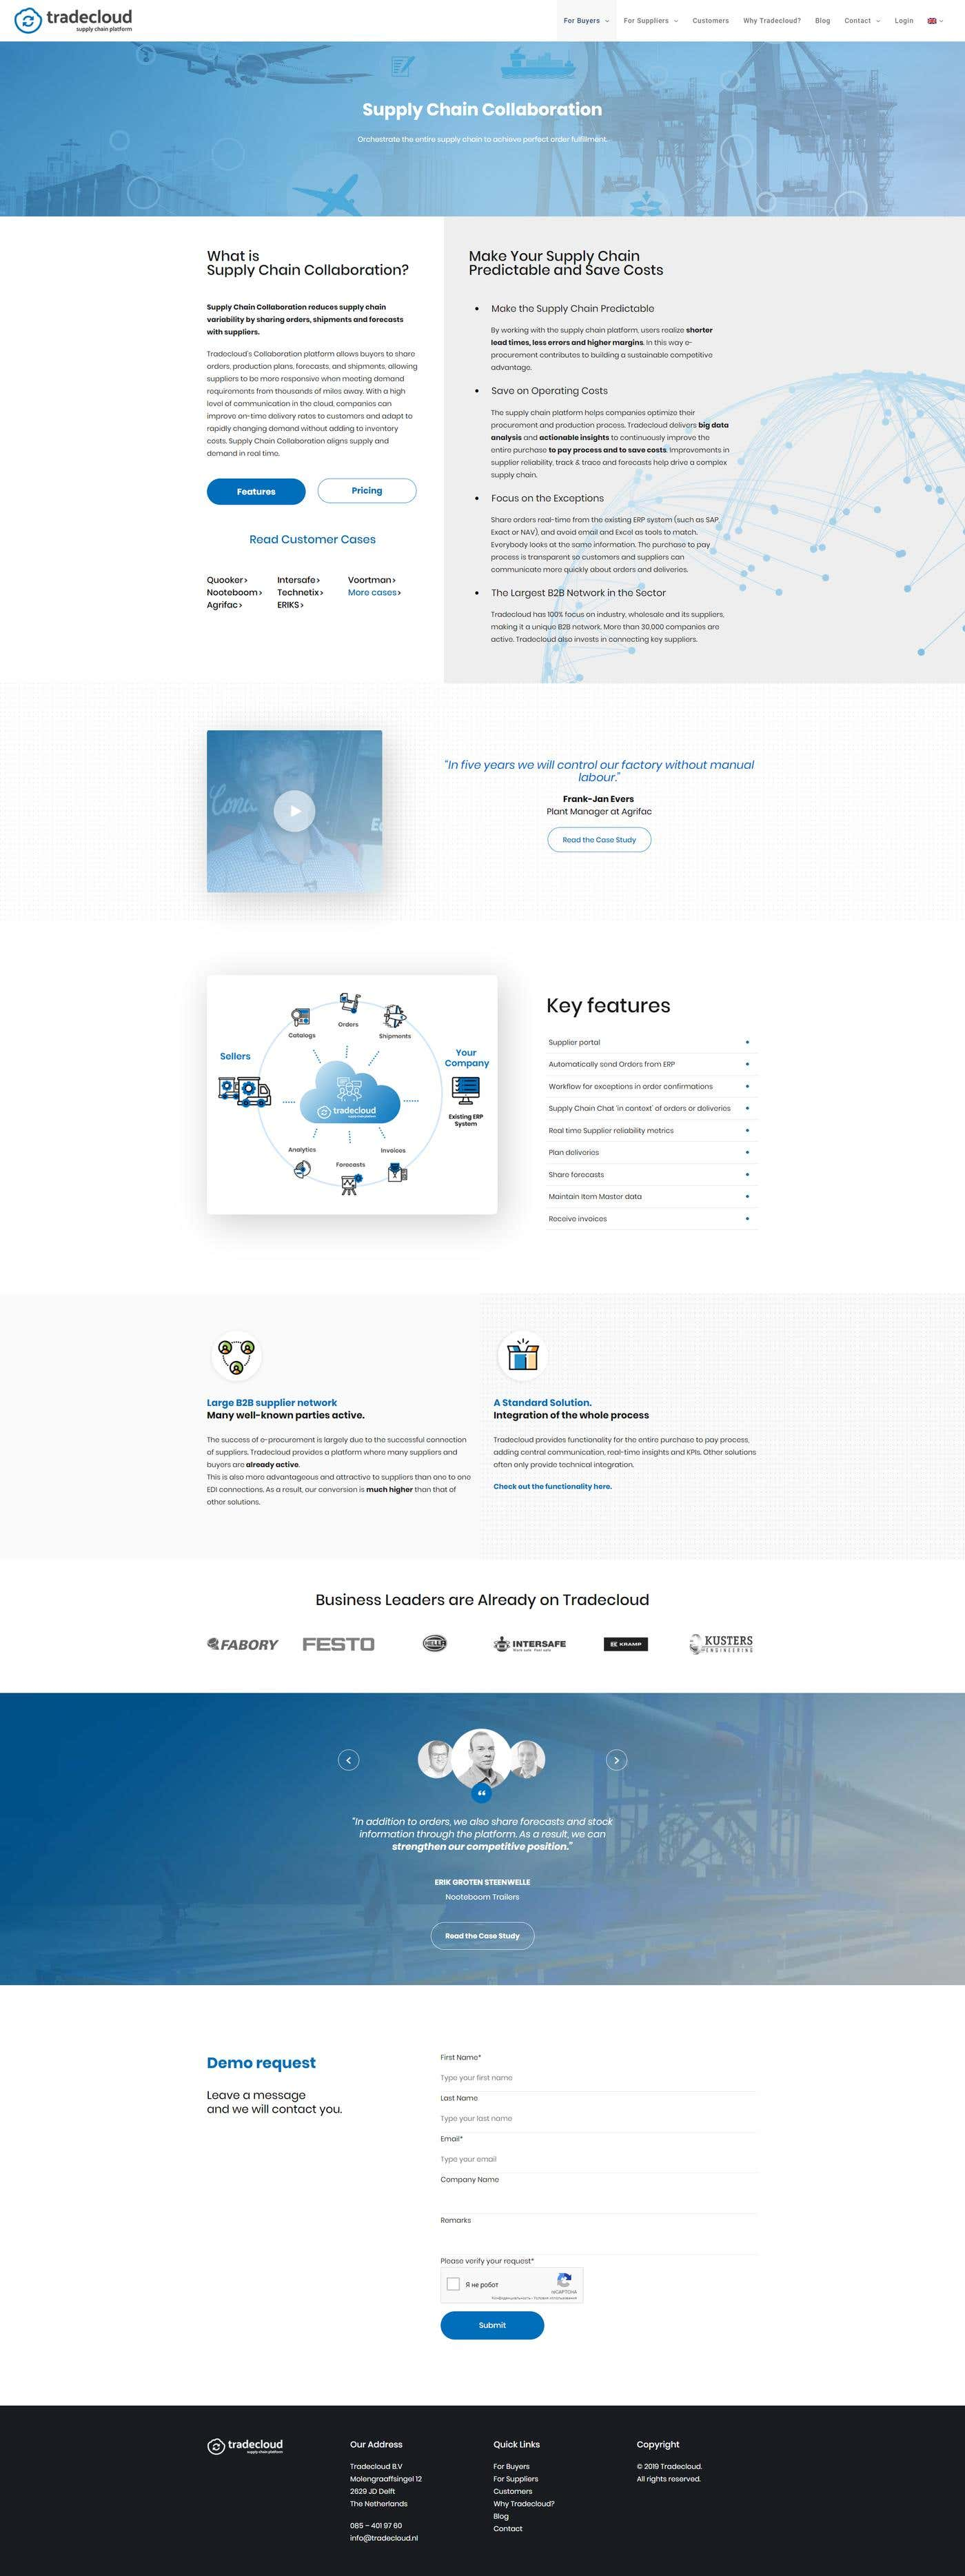 screencapture-tradecloud1-en-supply-chain-portal-for-buyers-2019-04-22-15_41_12.png